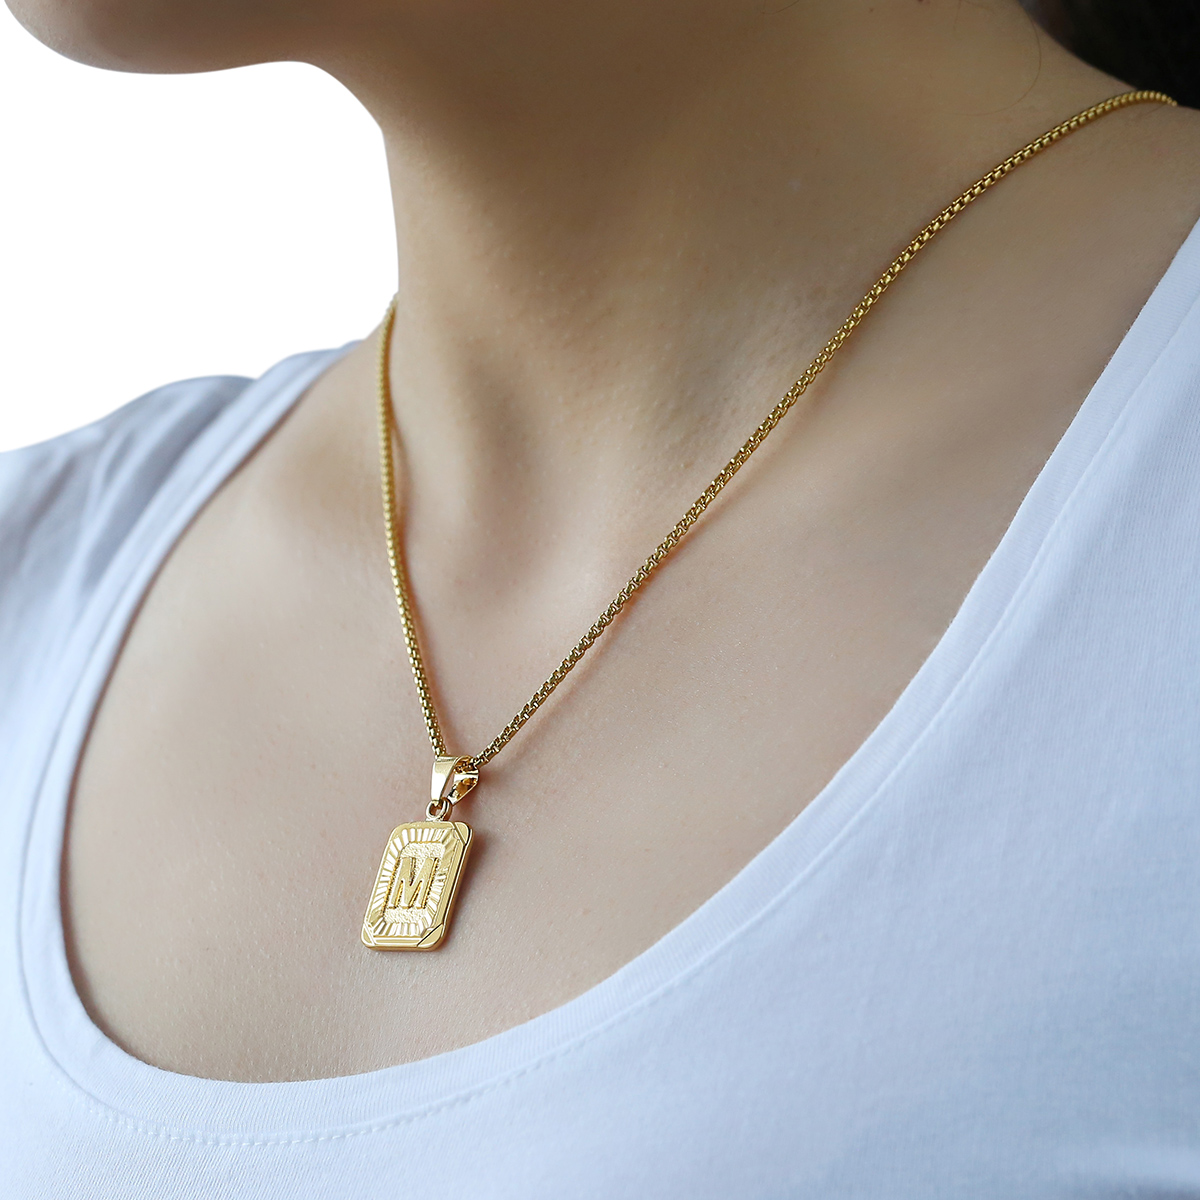 jewellery necklace mini gold rose minitial pendant initial rg shop